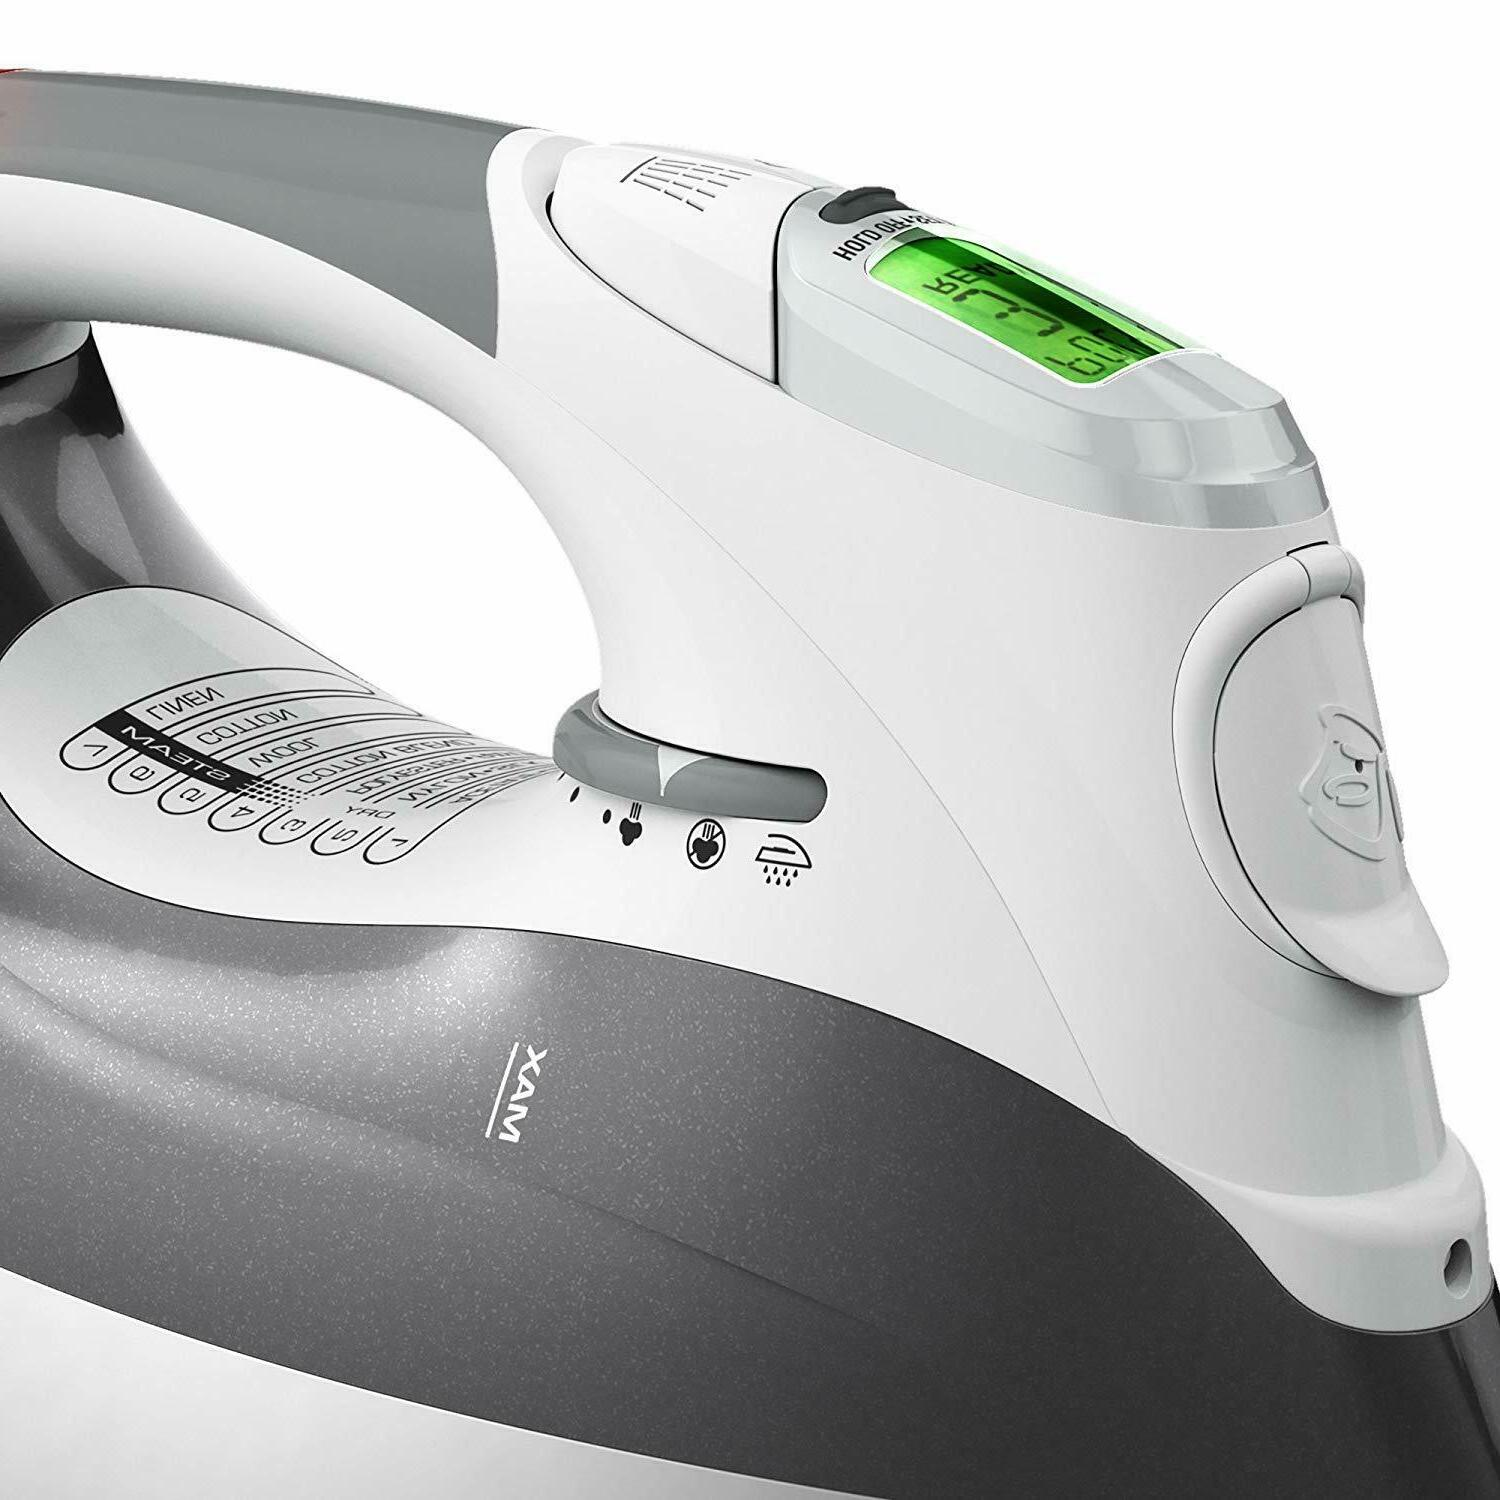 Digital Professional Iron, D2030 BLACK+DECKER